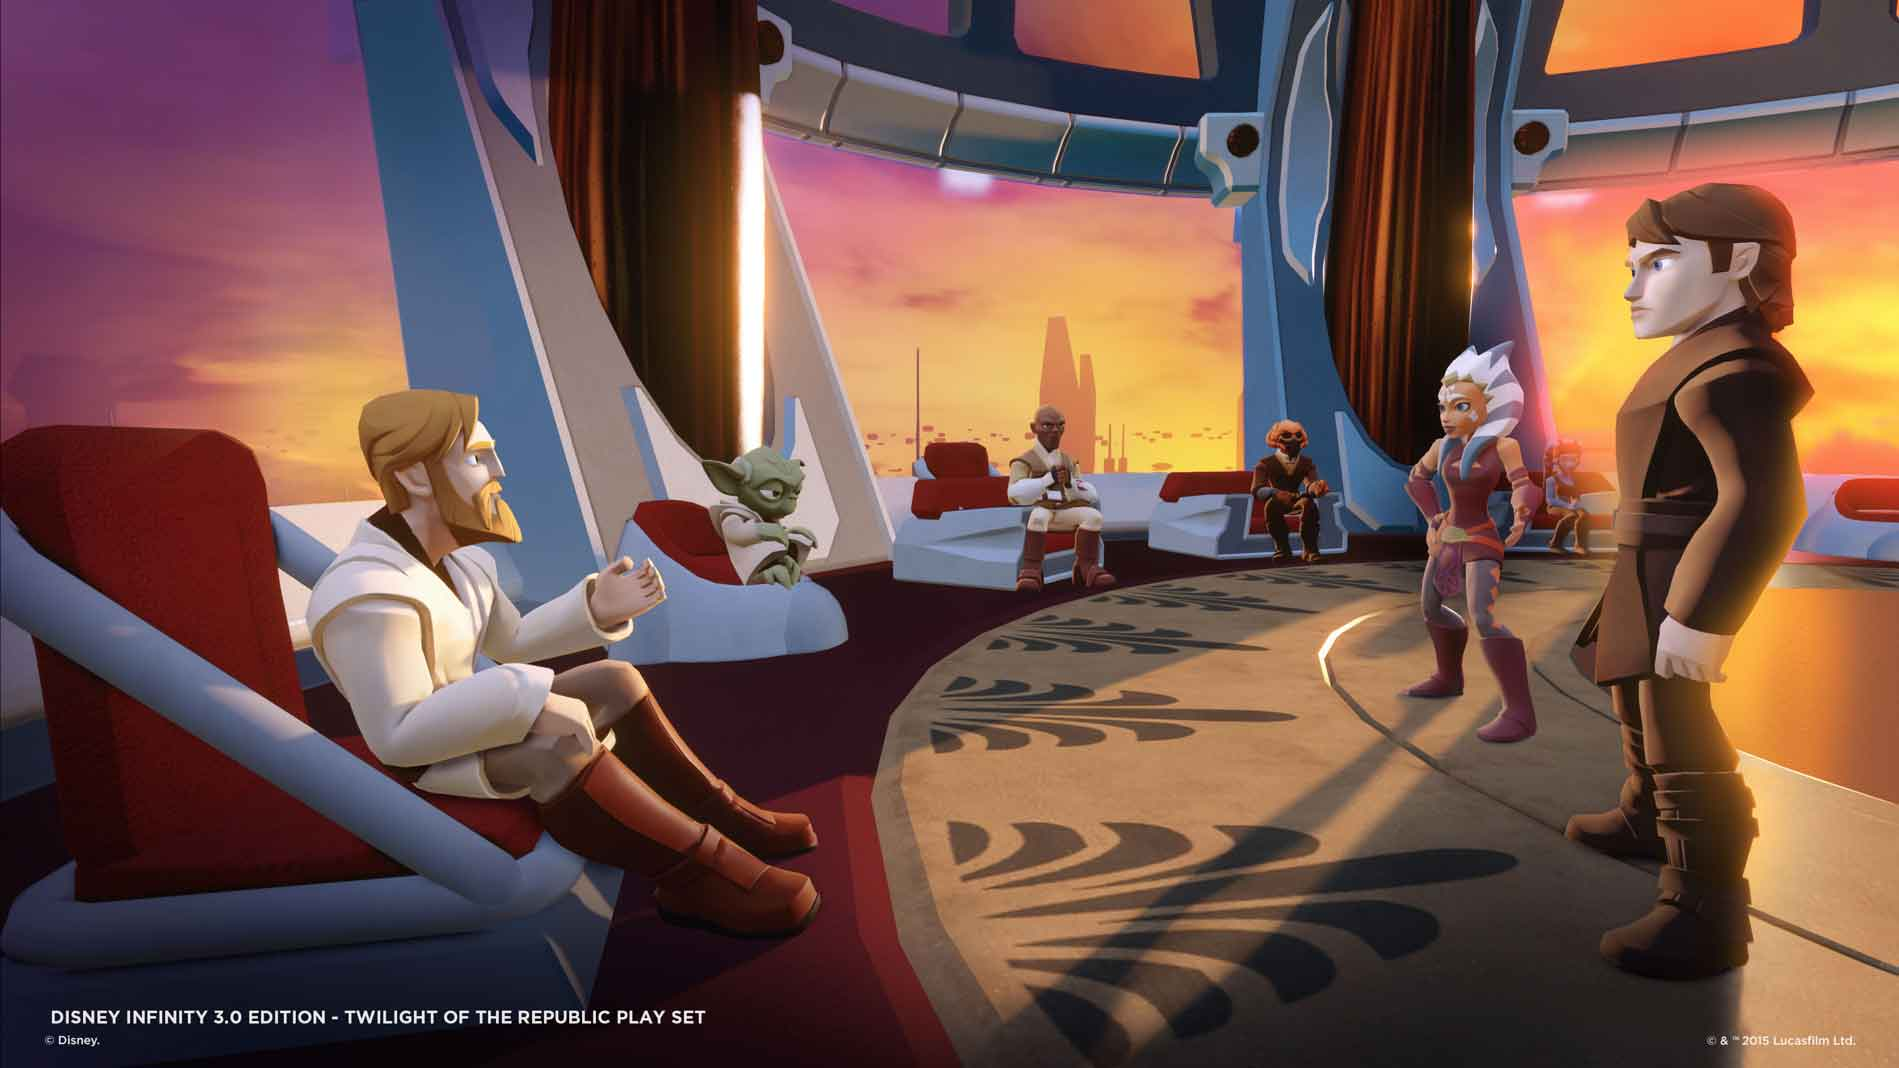 disney infinity 3 0 twilight of the republic play set high-res screens and new details